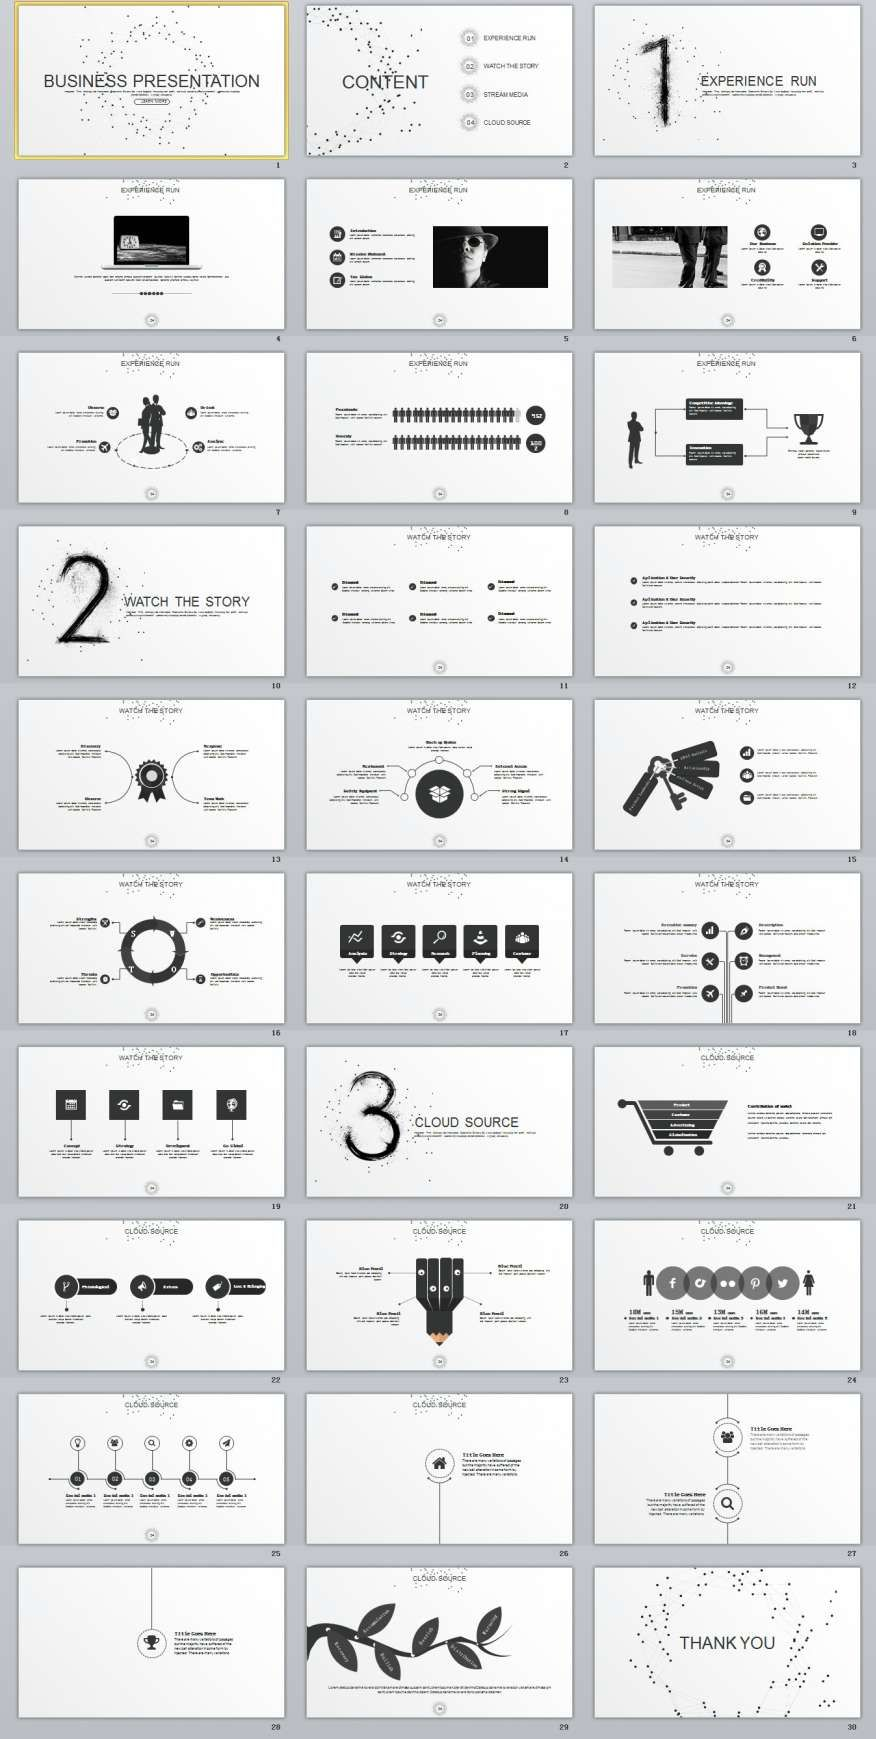 30 gray business report powerpoint templates pinterest template 30 gray business report powerpoint templates cheaphphosting Choice Image